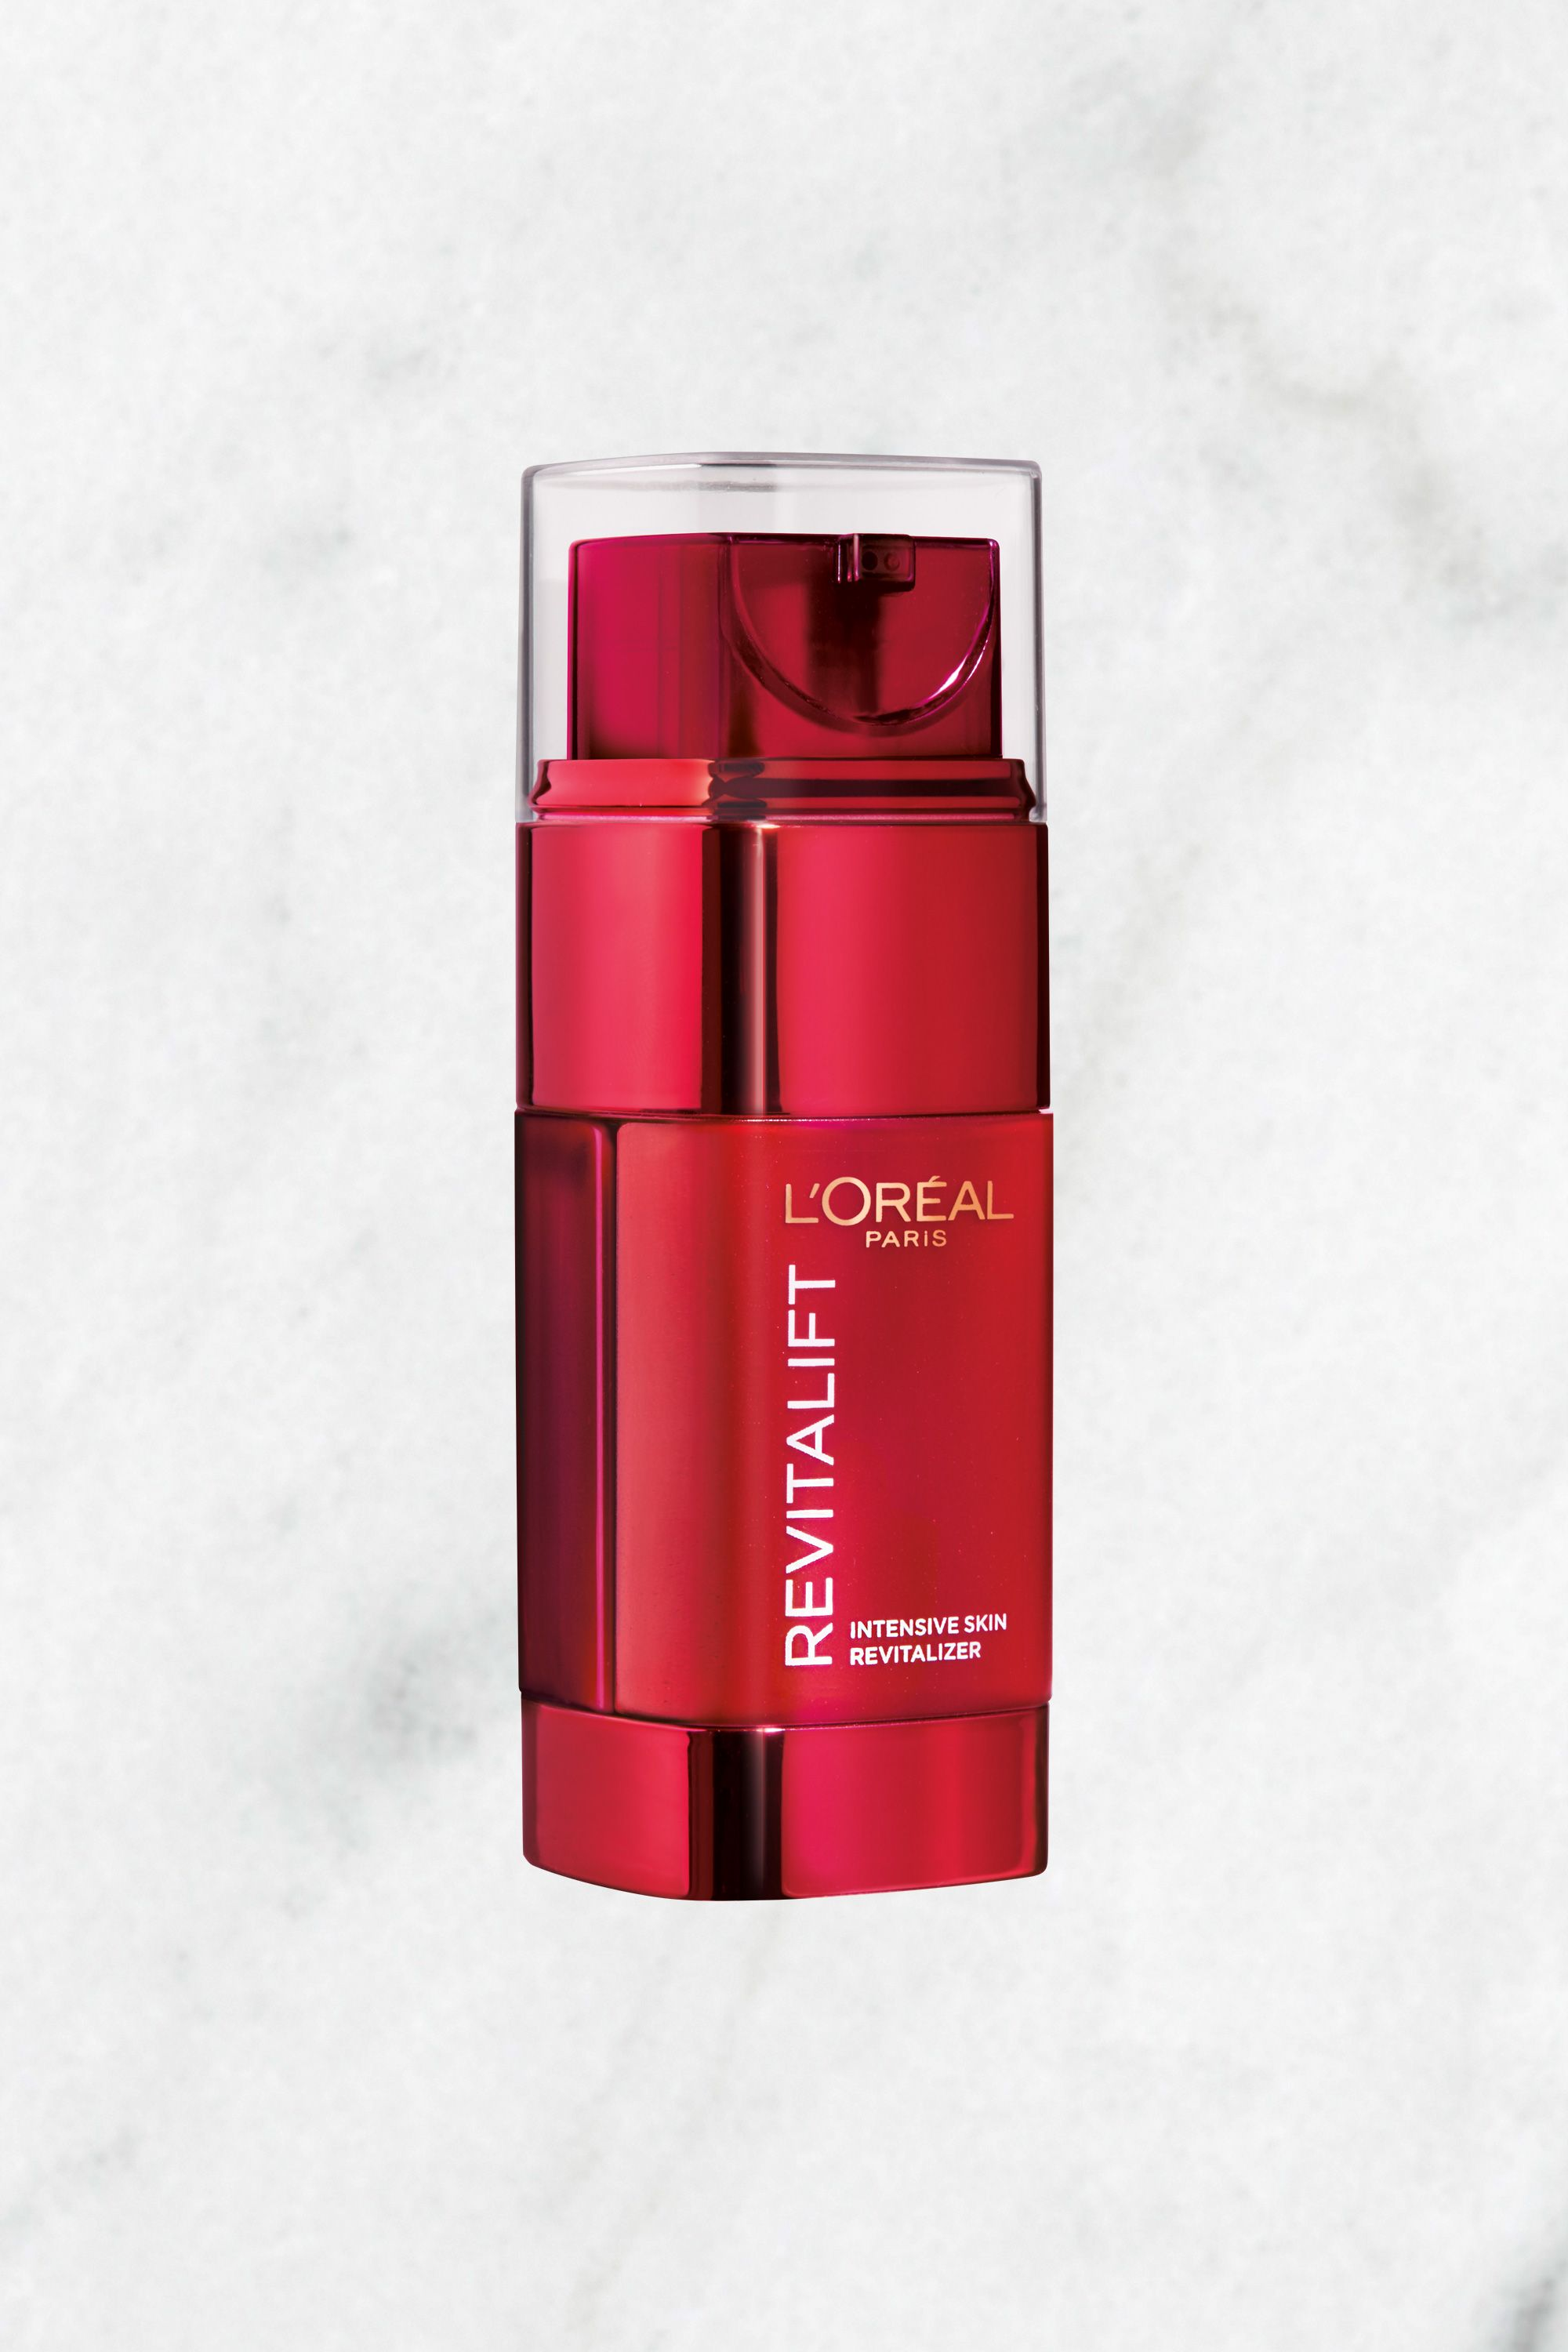 "<p><strong data-redactor-tag=""strong"">Double up on moisture<br></strong>If your complexion's dull, dry and/or generally <em data-redactor-tag=""em"" data-verified=""redactor"">meh</em>, opt for a double dose of moisture morning and night by using a serum with hyaluronic acid, which acts as a magnet drawing moisture deep into the skin, followed by a hydrating cream. For easy application, try a two-in-one formula like <a href=""http://www.lorealparisusa.com/products/skin-care/products/facial-moisturizers/revitalift-triple-power-intensive-skin-revitalizer-serum-moisturizer.aspx?shade=Triple-Power-Intensive-Skin-Revitalizer-Serum-Moisturizer"">L'Oréal Paris RevitaLift Triple Power Intensive Skin Revitalizer Serum + Moisturizer</a>. According to L'Oréal<span class=""redactor-invisible-space"" data-verified=""redactor"" data-redactor-tag=""span"" data-redactor-class=""redactor-invisible-space""></span> Paris scientific skincare expert Dr. Rocio Rivera, it's the easiest and quickest way to give skin a boost. In fact, up to ""30 percent of fine lines and wrinkles can disappear [or at least look a lot less noticeable] simply by applying a basic formula."" It's important for those prone to oily skin too, Dr. Rivera says, because without it skin goes into ""drought mode and starts overproducing oil.""</p>"